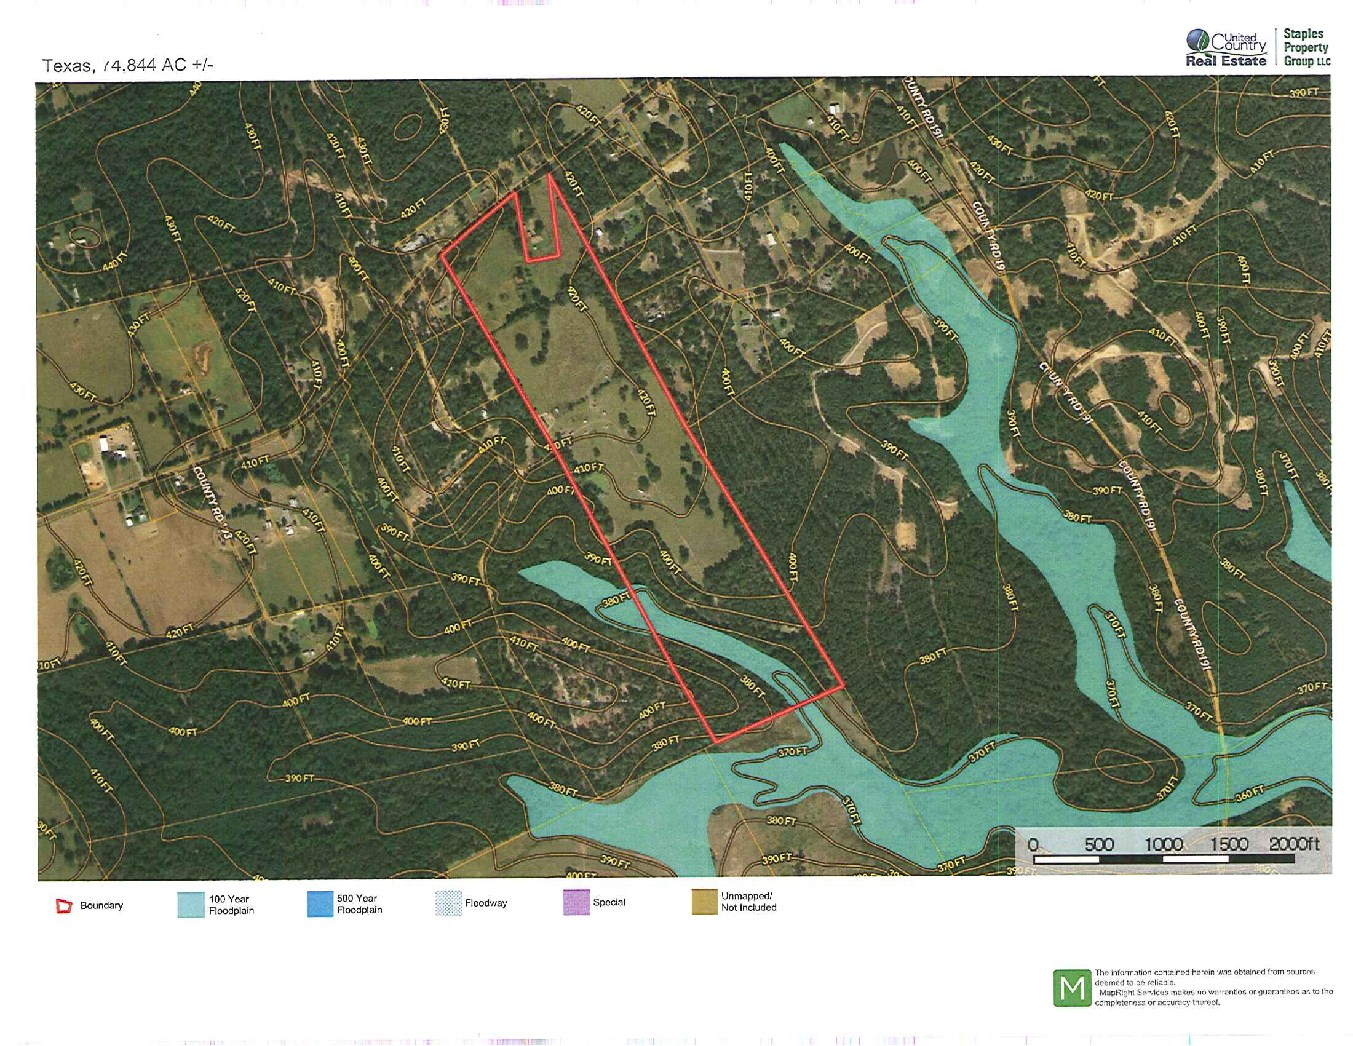 73 ACRES FOR SALE IN ELKHART TEXAS